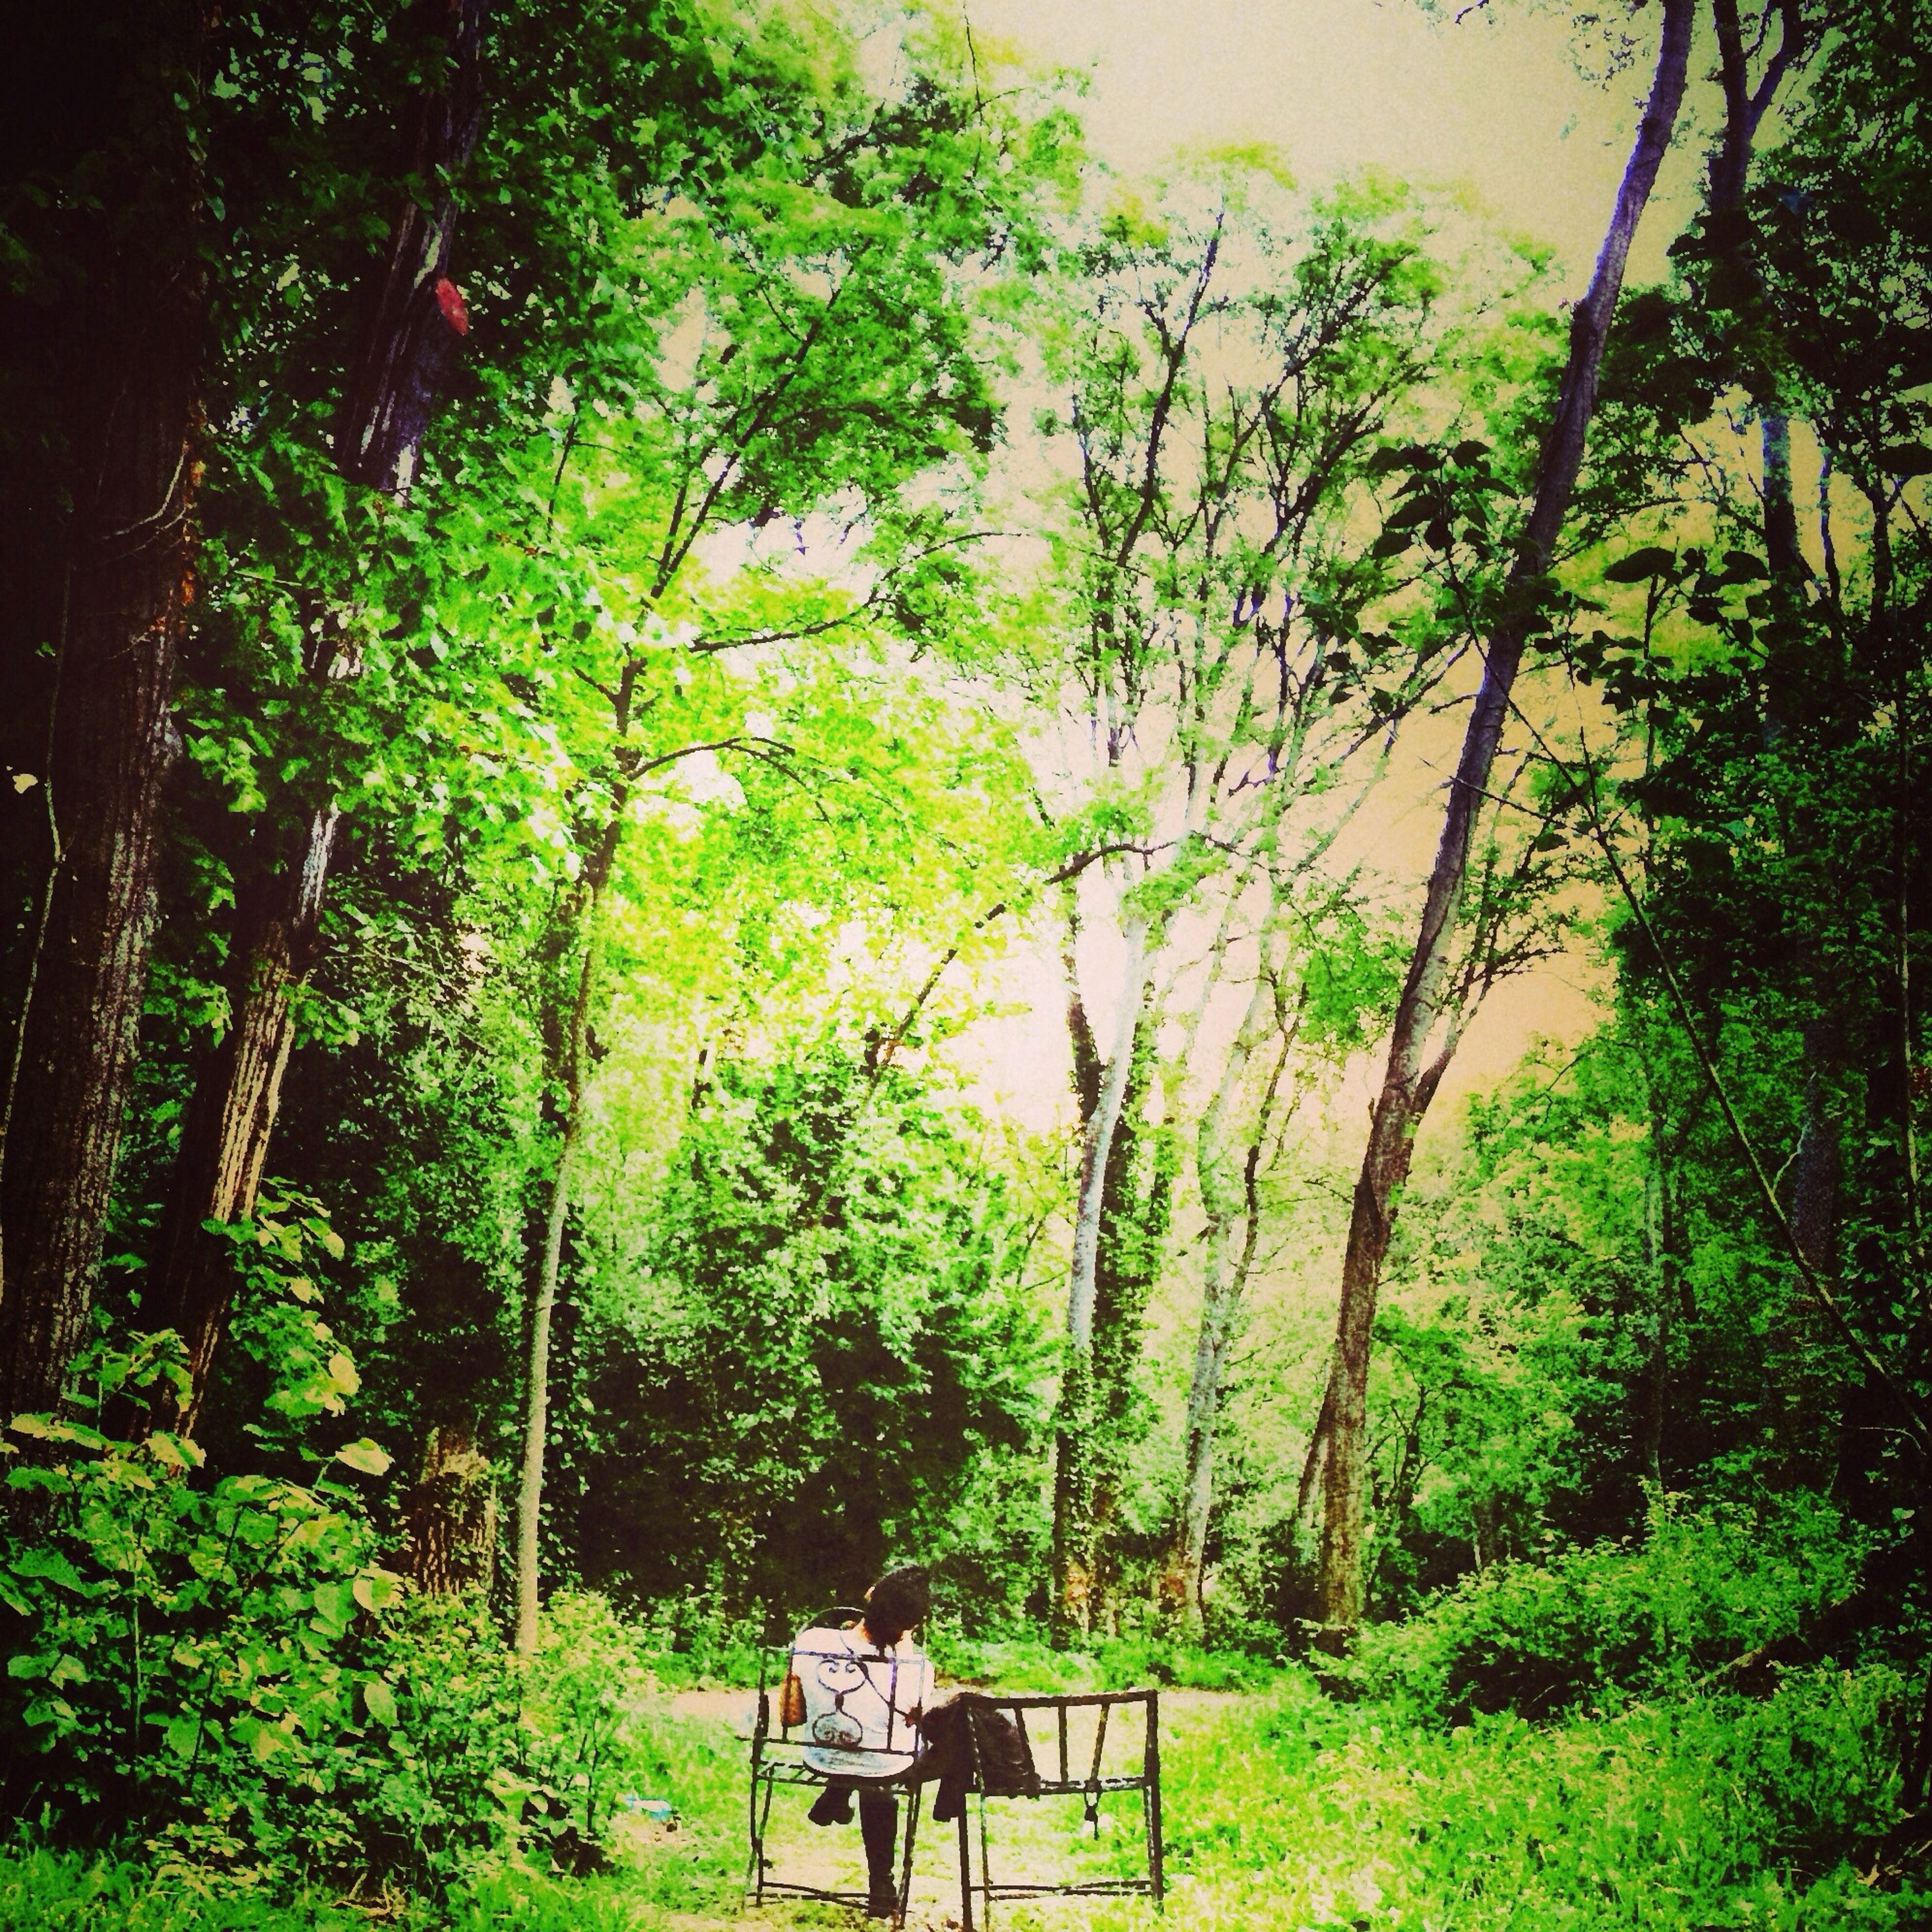 tree, growth, green color, tranquility, nature, tranquil scene, grass, plant, tree trunk, beauty in nature, forest, lush foliage, branch, scenics, landscape, sitting, park - man made space, bench, men